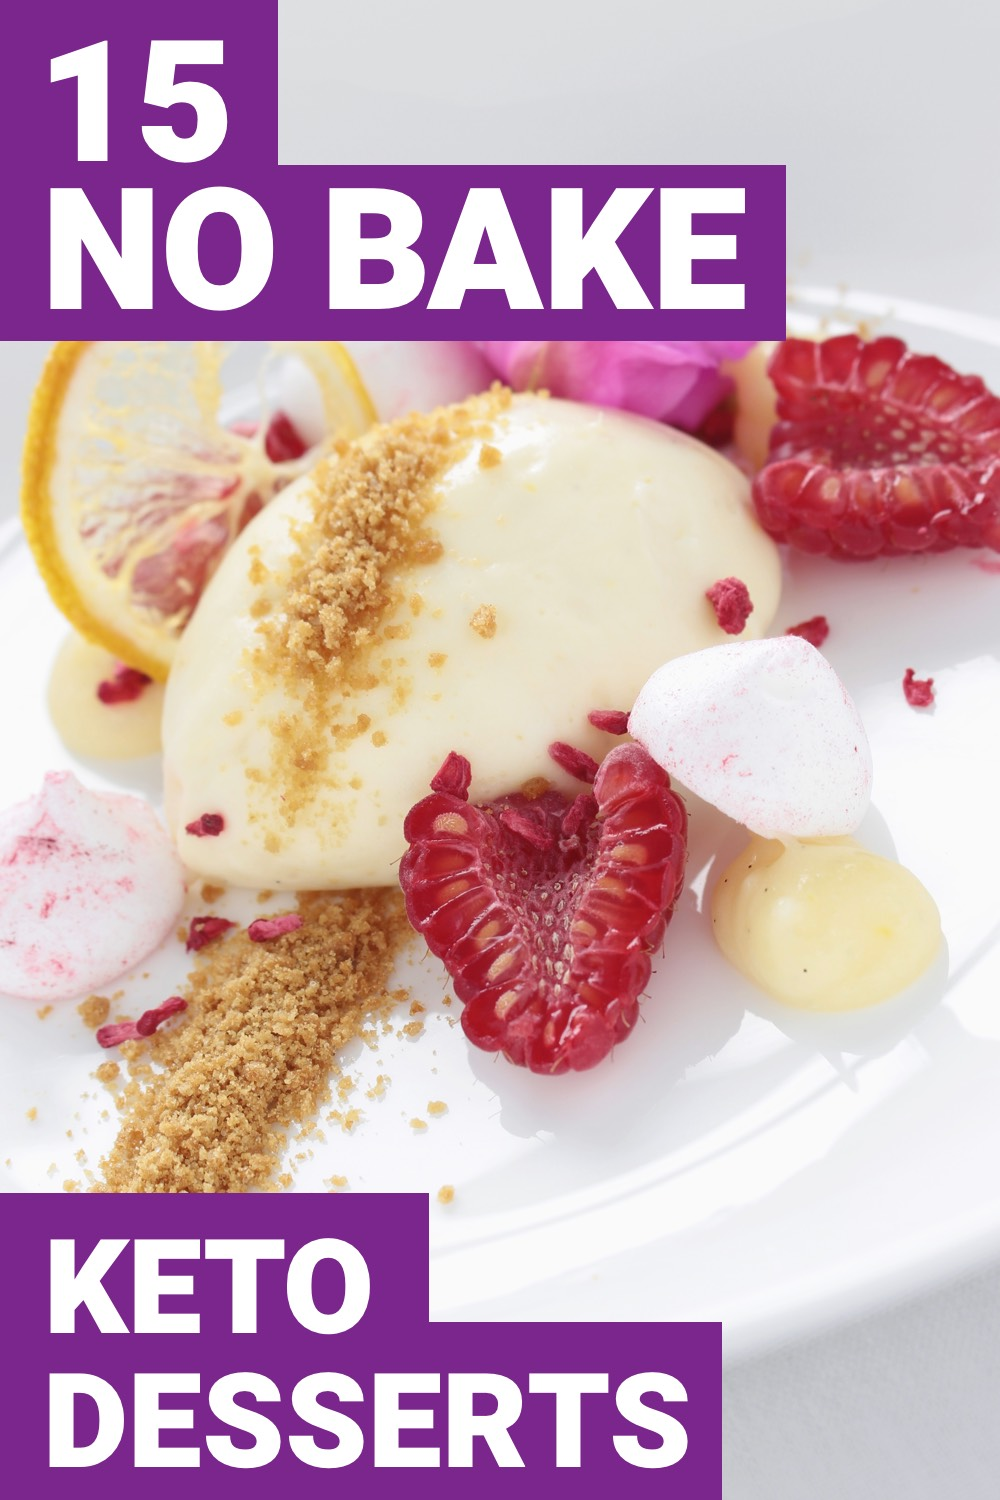 The ketogenic diet is great because of the variety of foods that you get to eat. If you're ready for keto then check out these keto desserts.